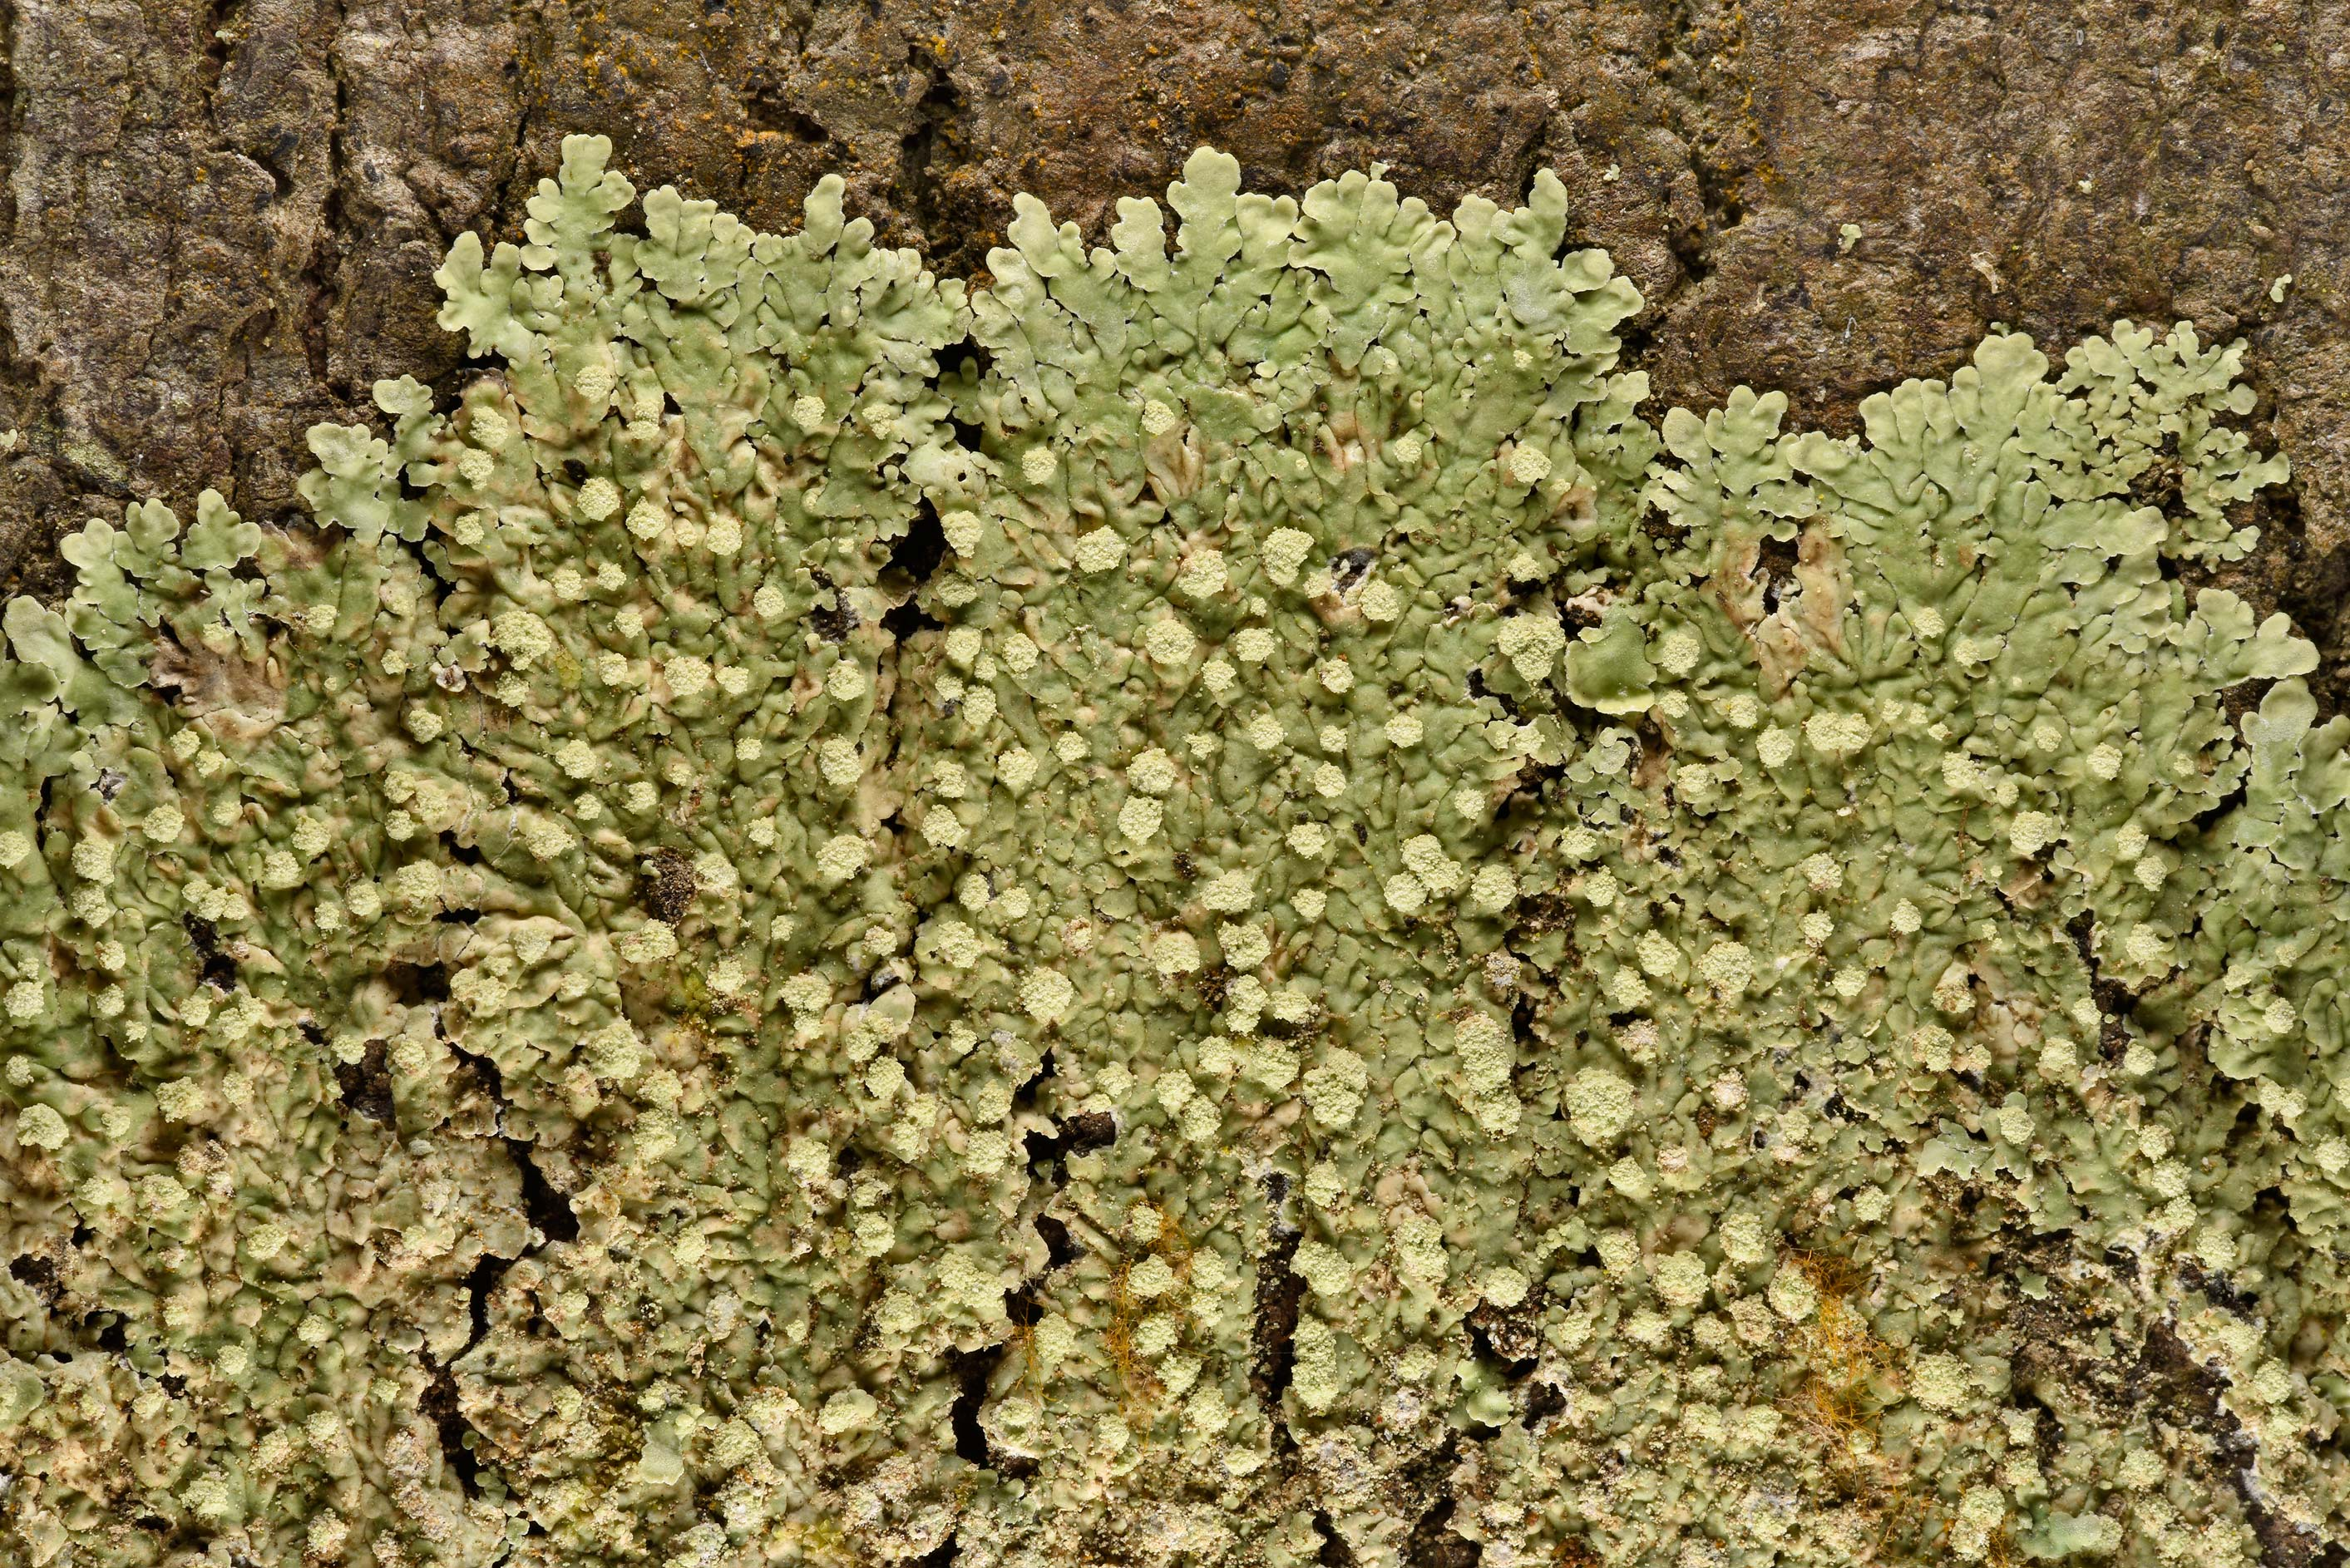 Pyxine lichen on tree bark in Big Creek Scenic...National Forest. Shepherd, Texas